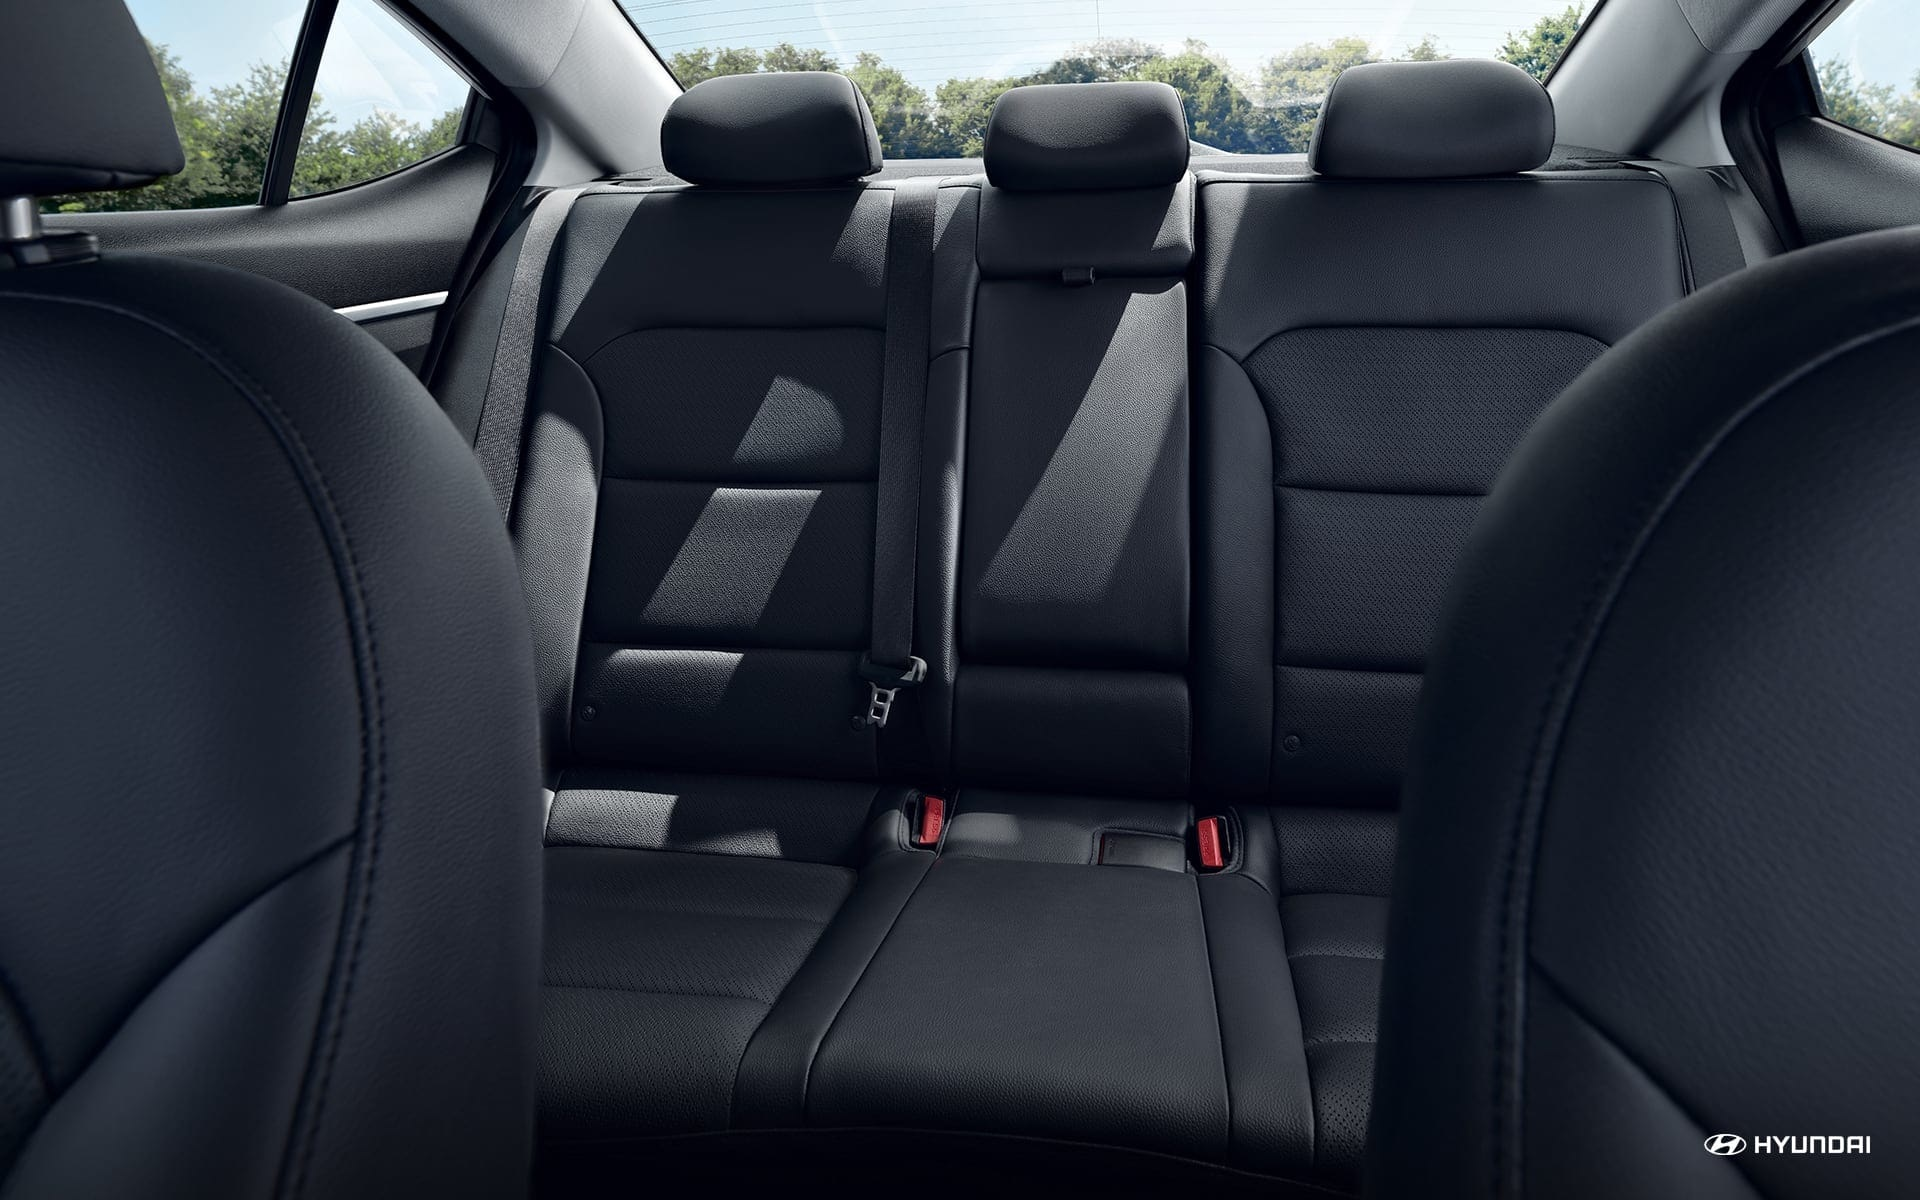 2019 Elantra Rear Seating